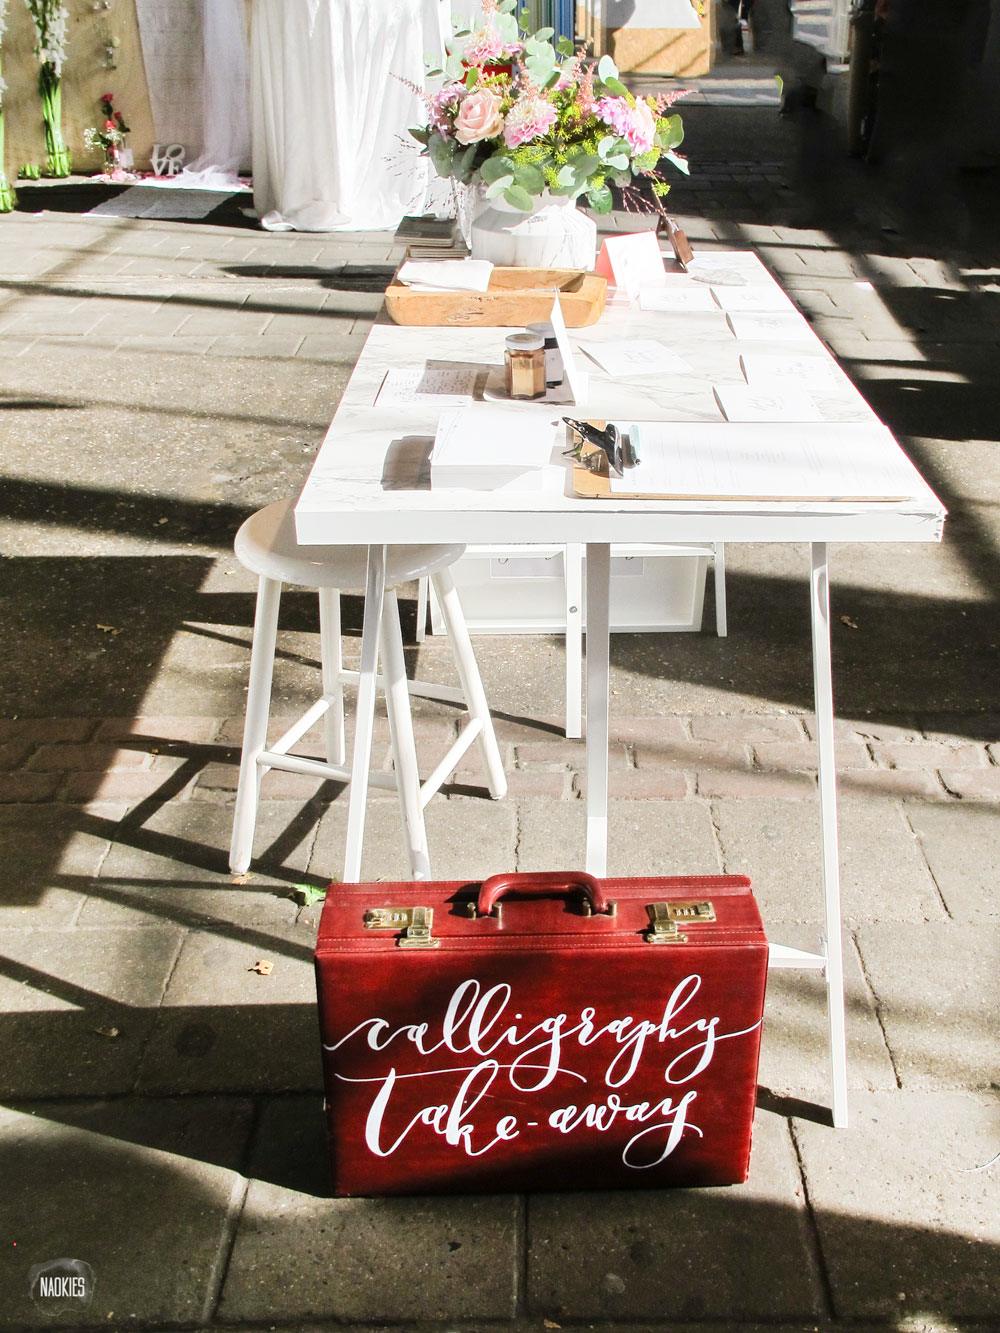 engaged_fair_delft_2016_calligraphy_table